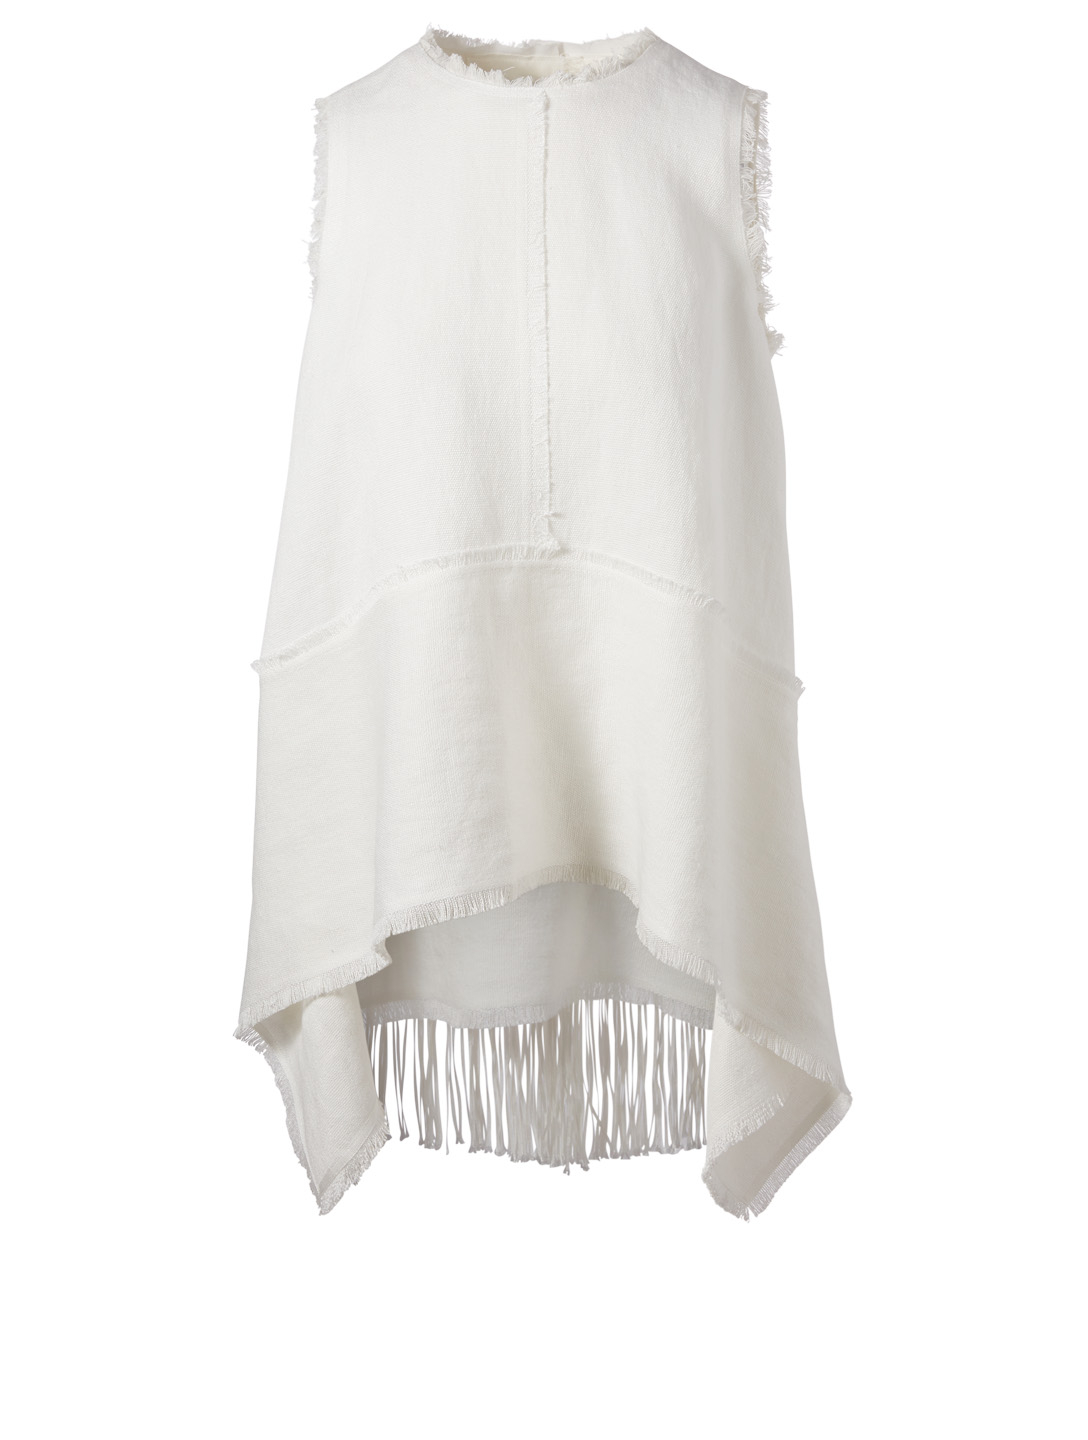 KUHO Raw-Edge Linen Top Women's White